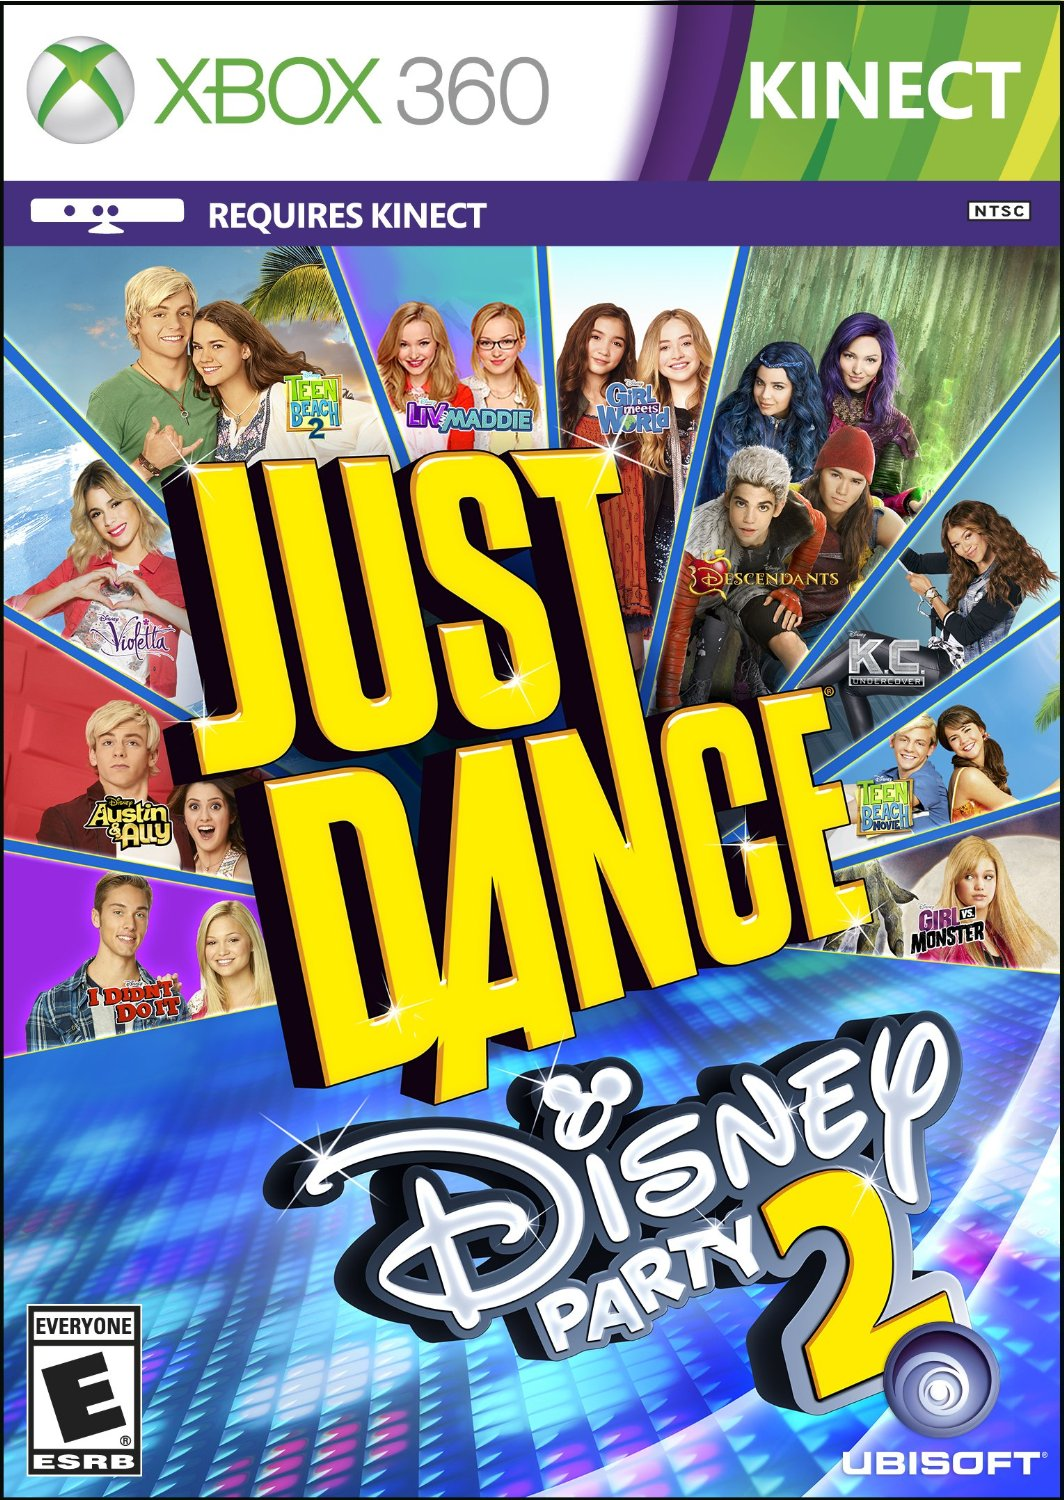 Just Dance Disney Party 2 ESPAÑOL XBOX 360 Cover Caratula